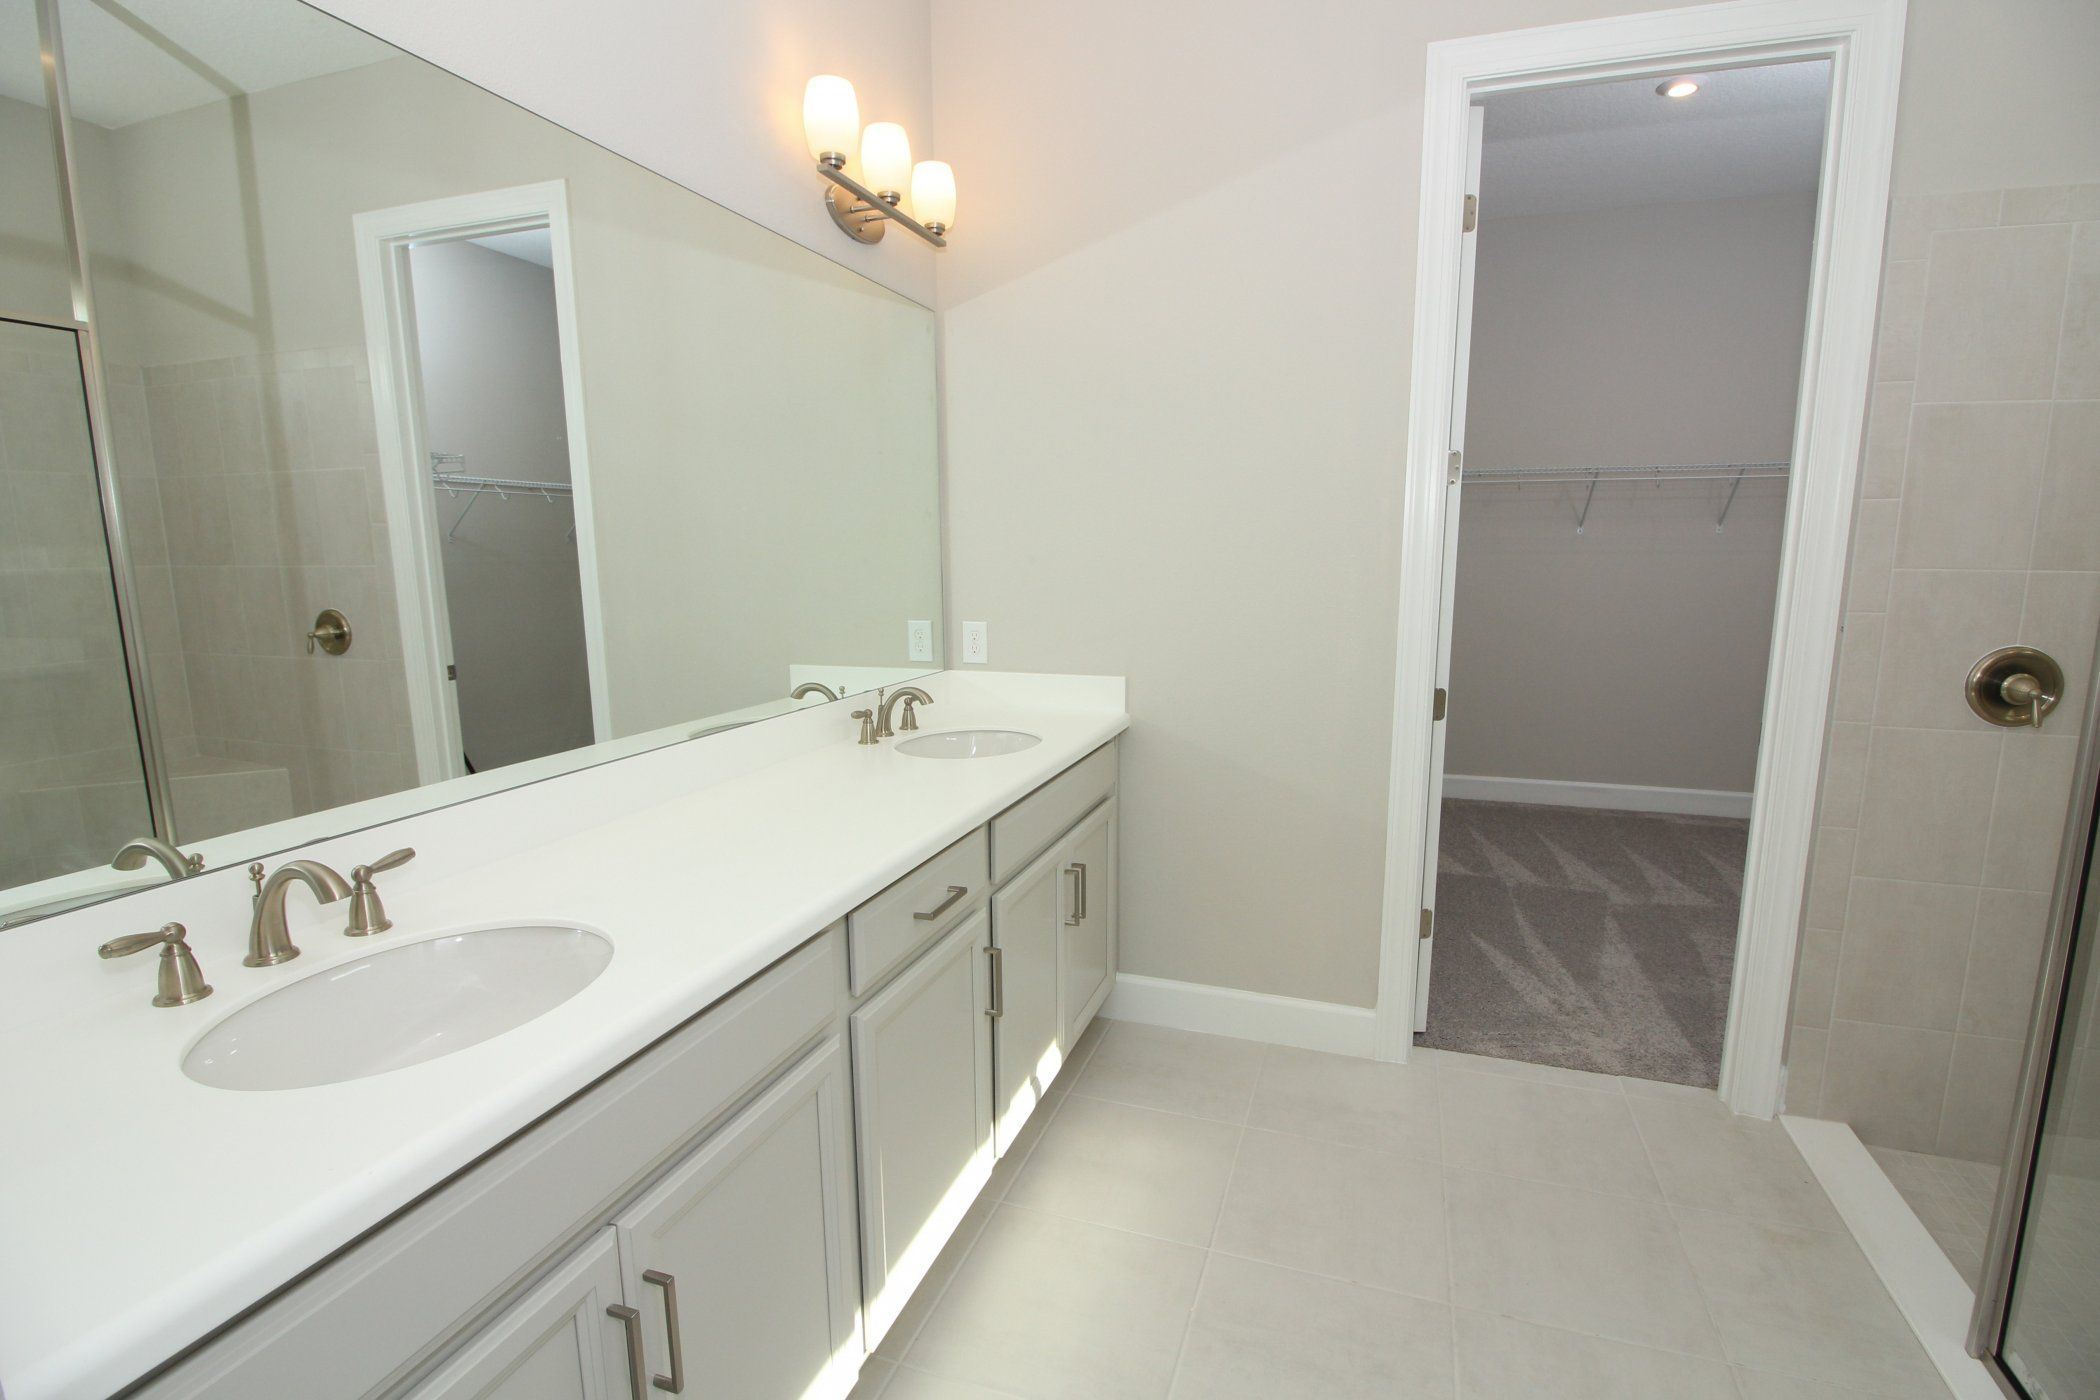 Bathroom featured in the Ambra By Taylor Morrison in Orlando, FL